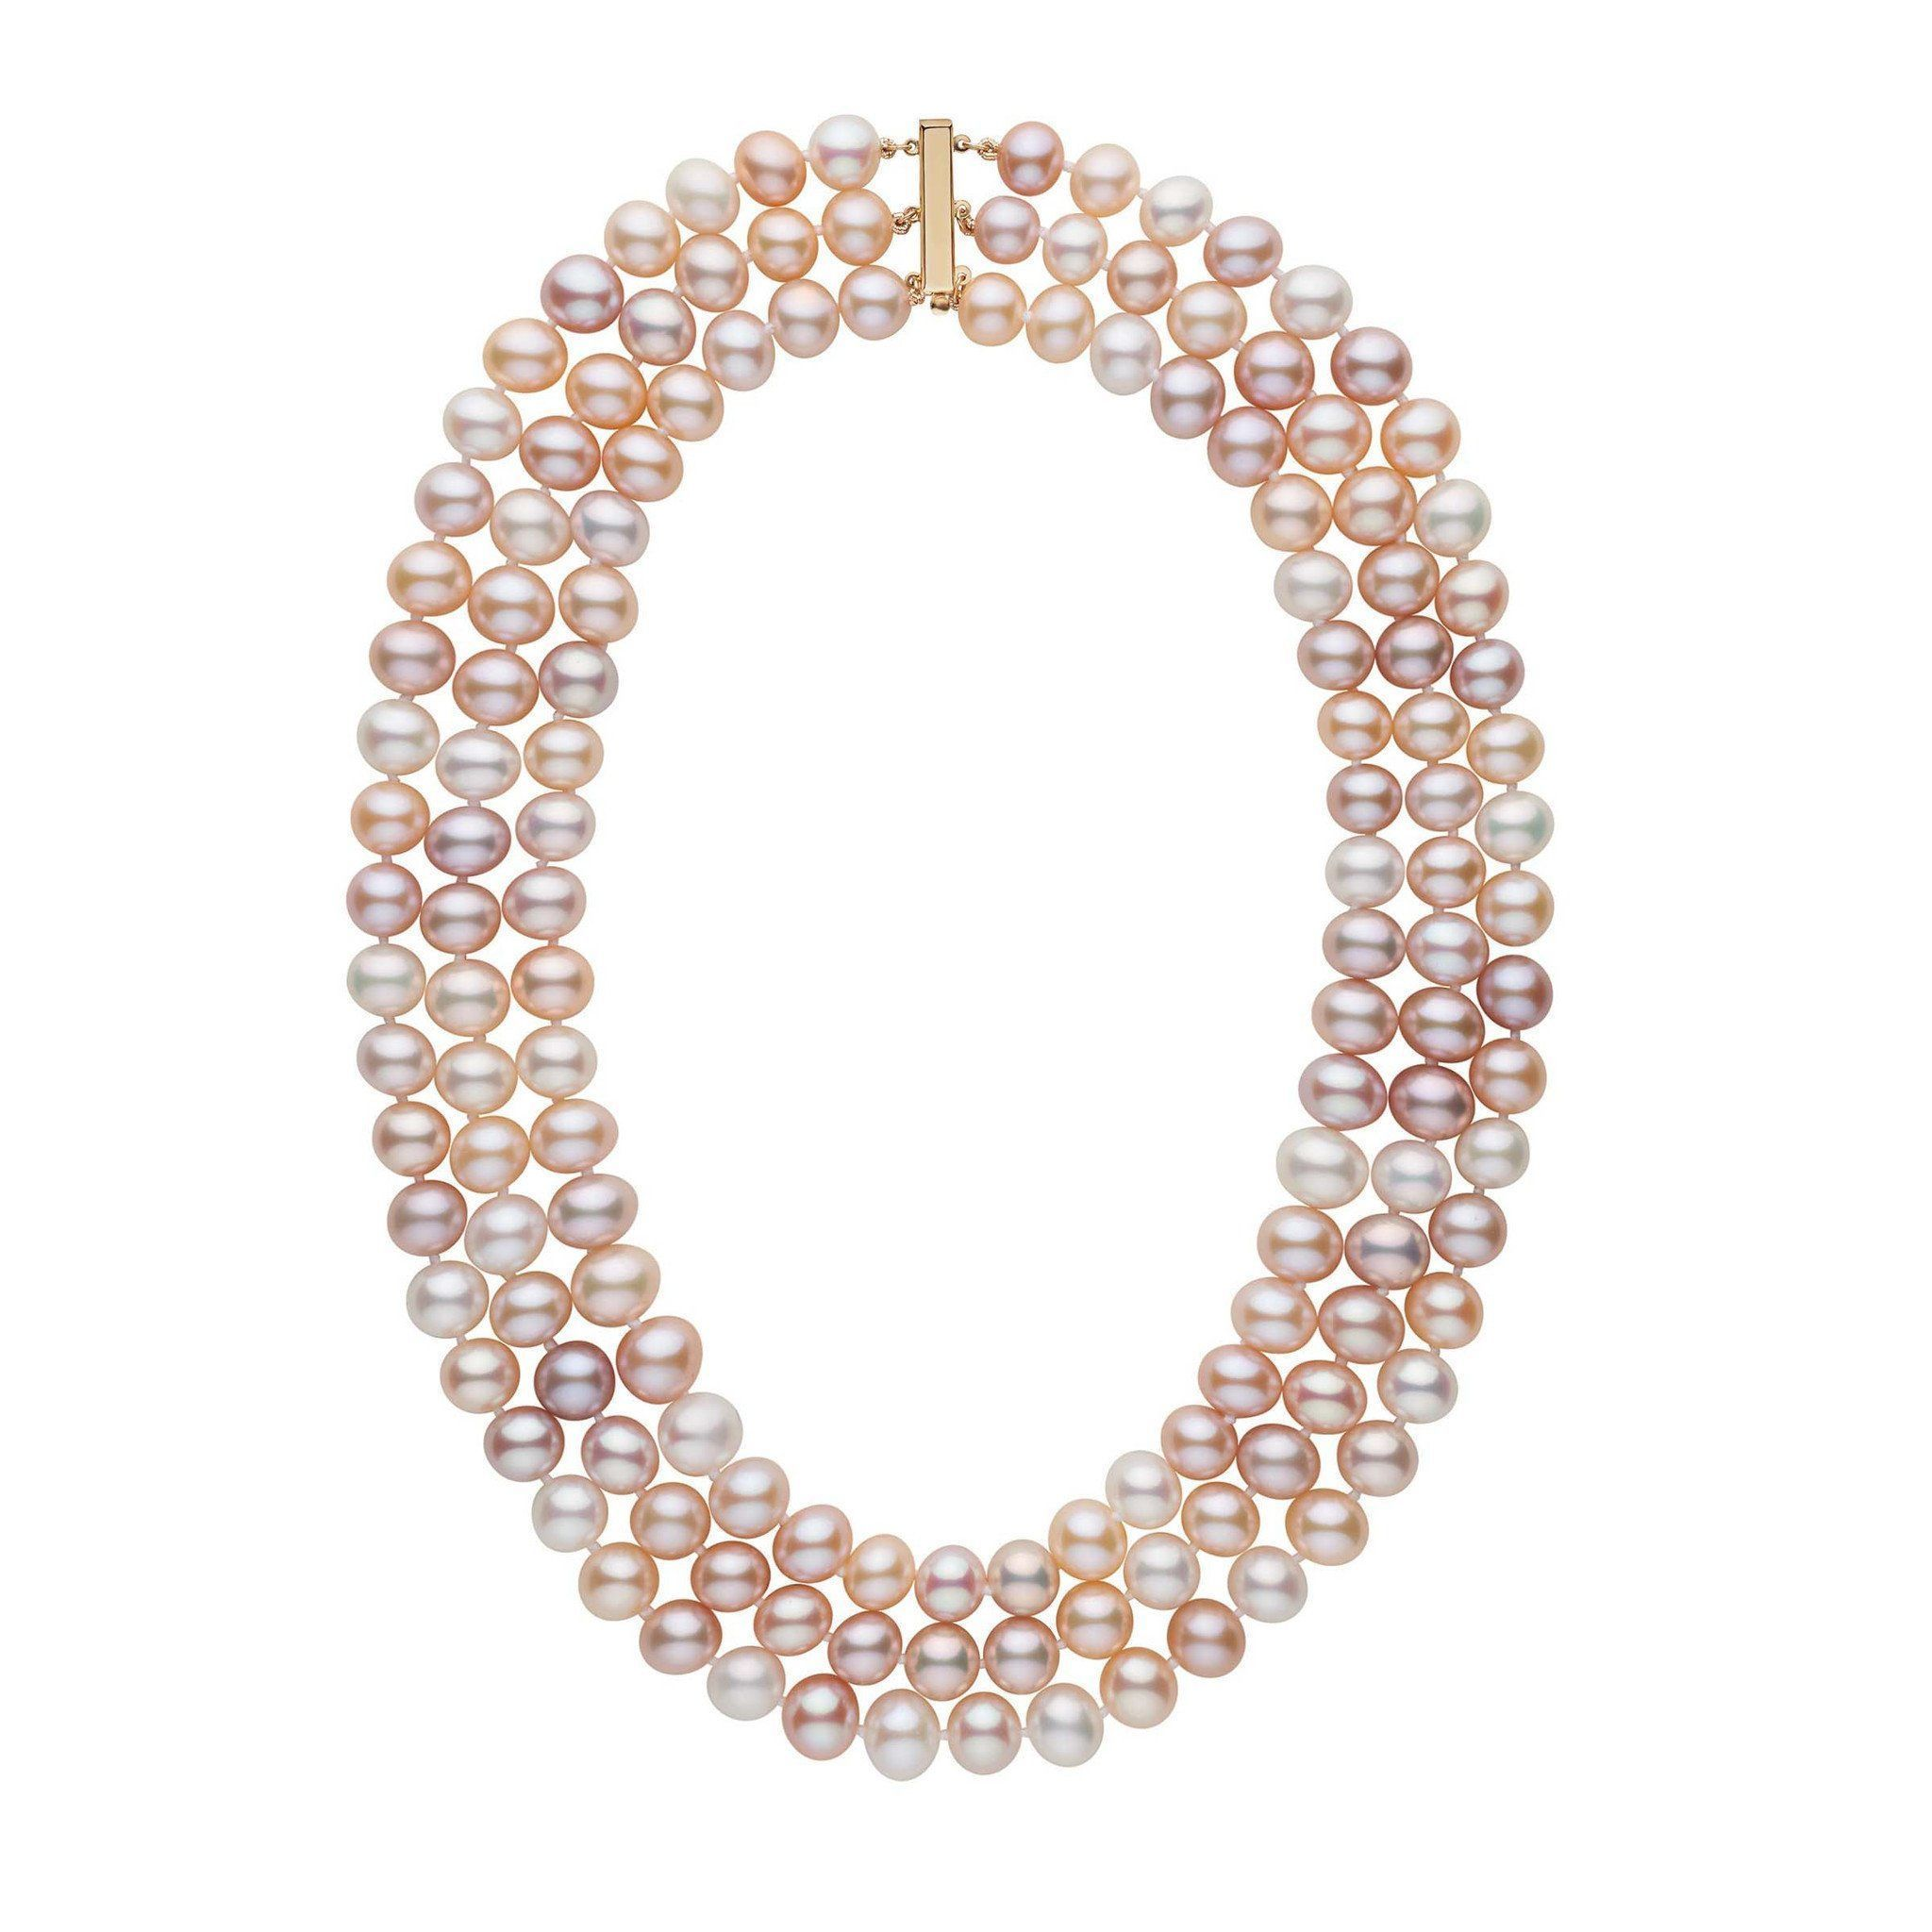 Triple Strand 8.5-9.0 mm AA+ Multicolor Freshwater Cultured Pearl Necklace